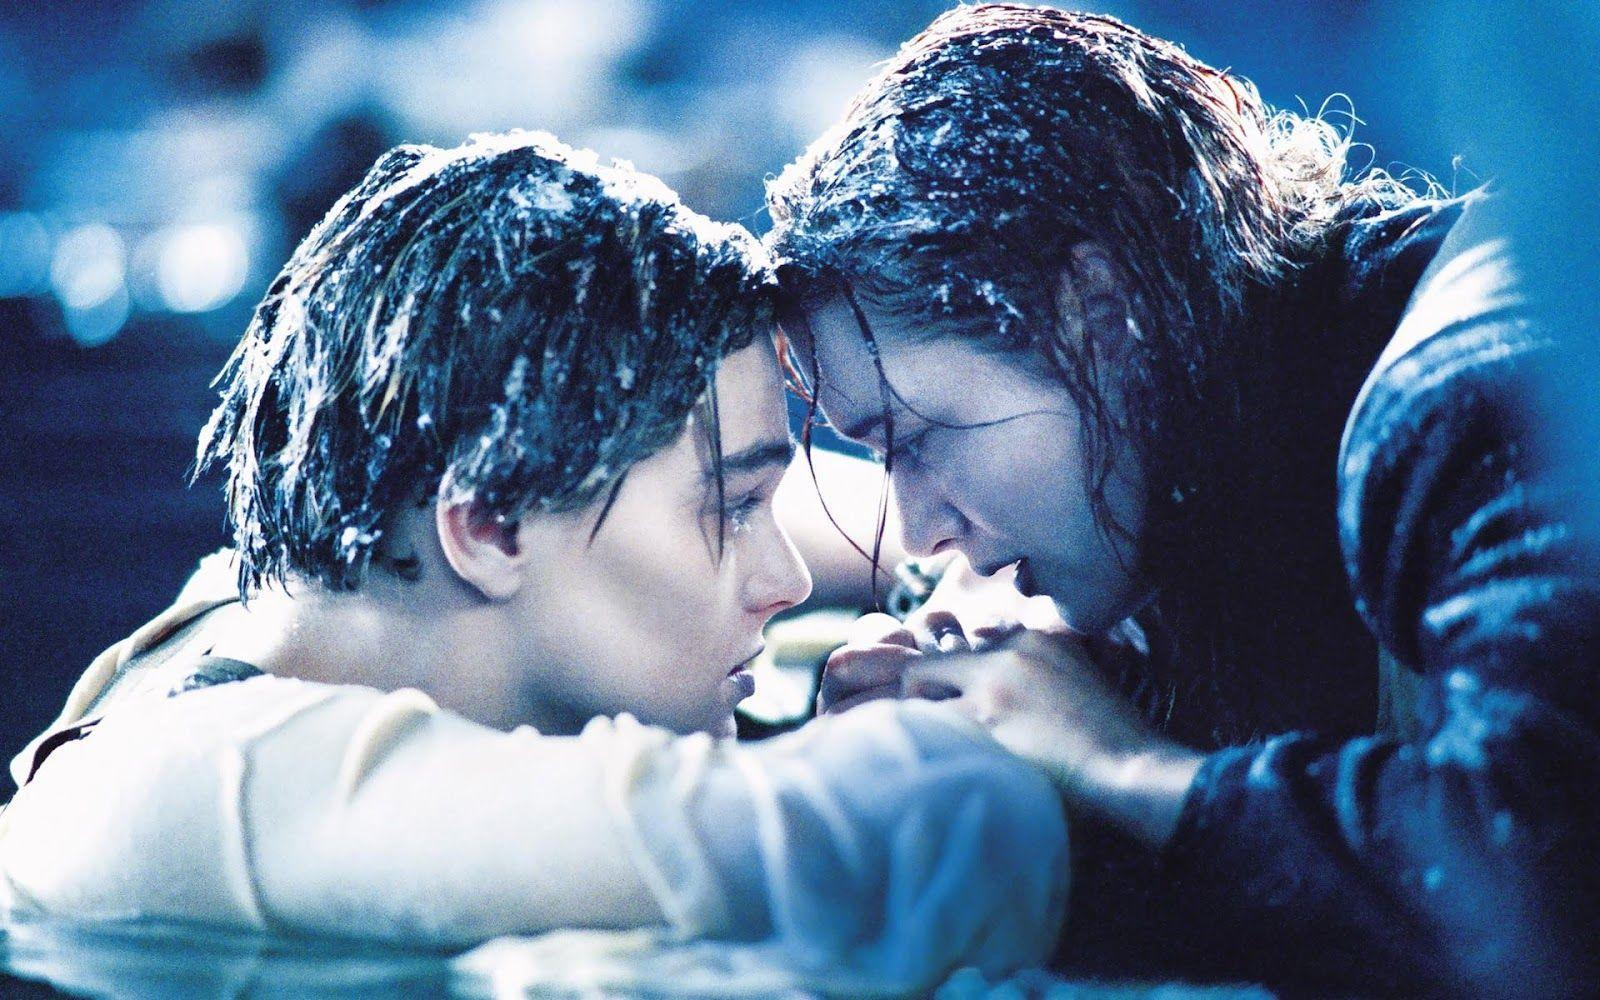 Titanic jack and rose wallpapers wallpaper cave - Jack and rose pics ...